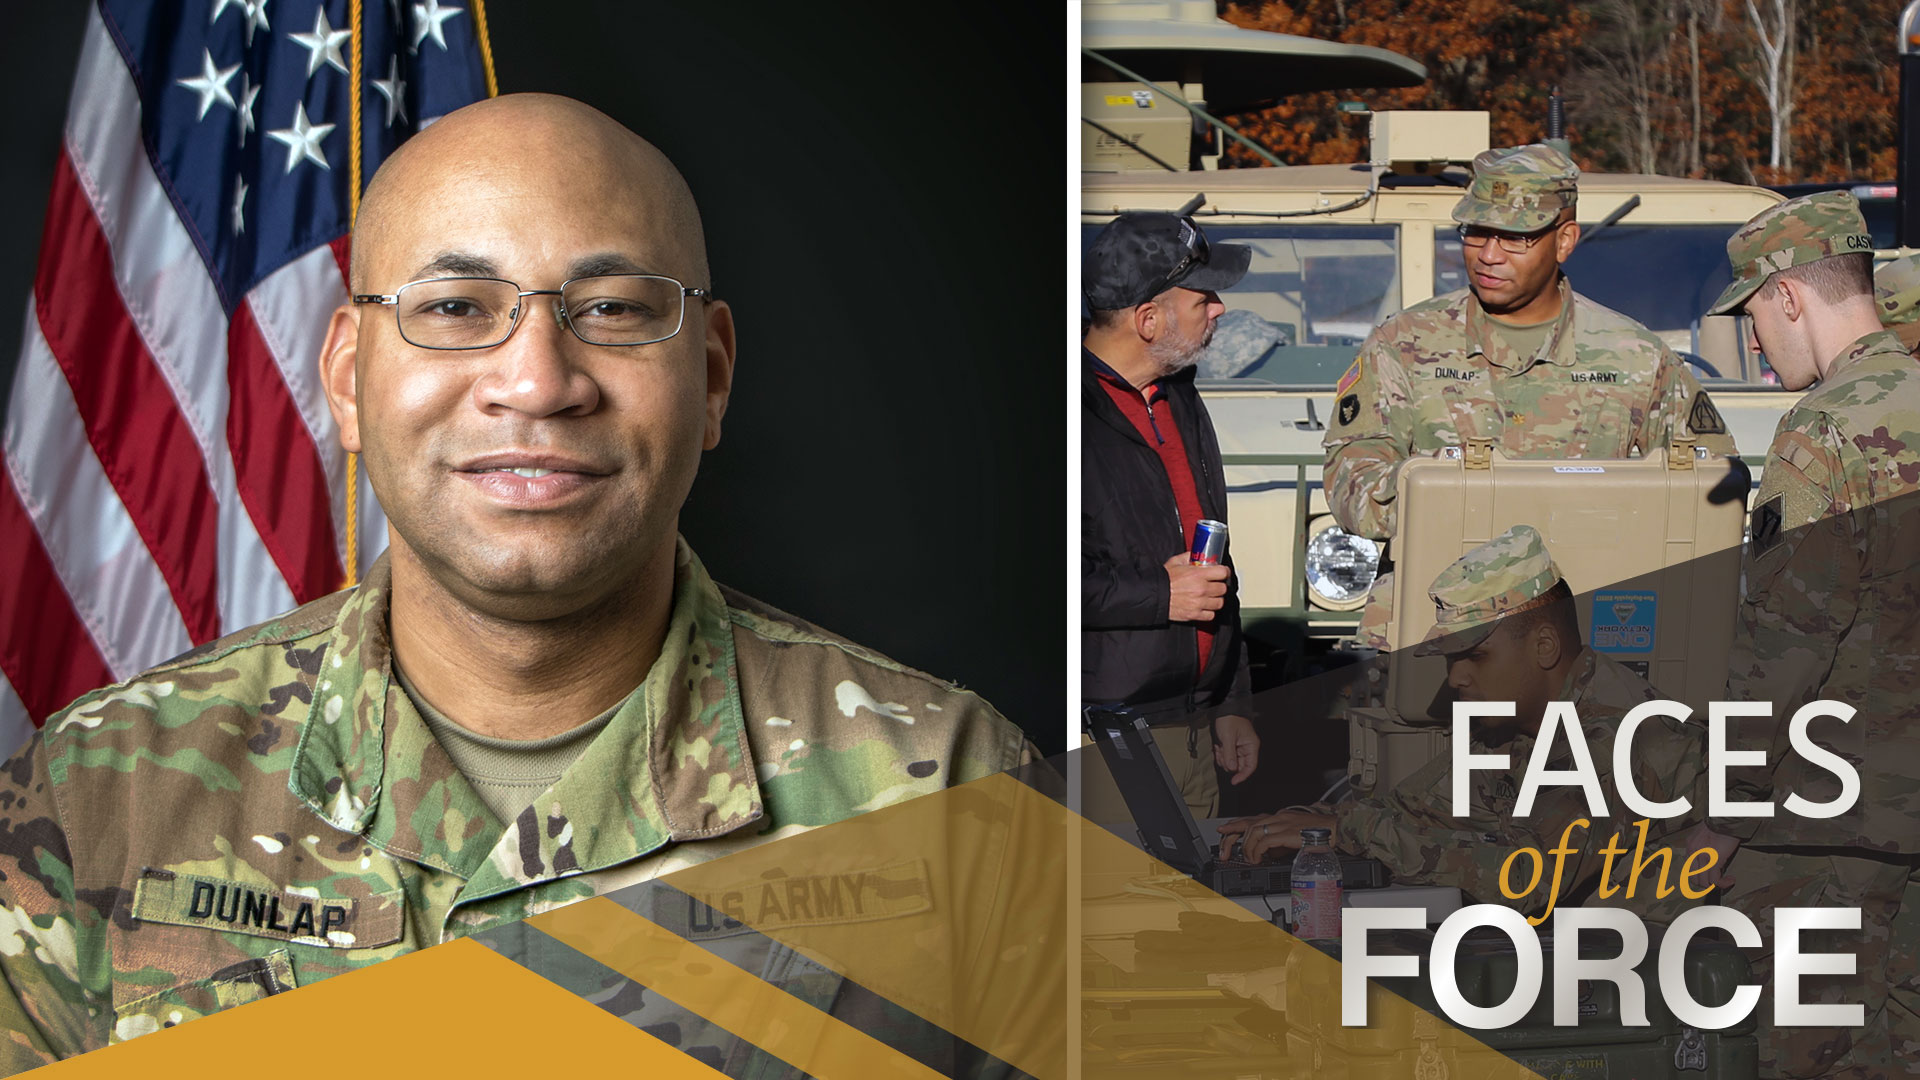 Link to Maj. Dunlap's profile